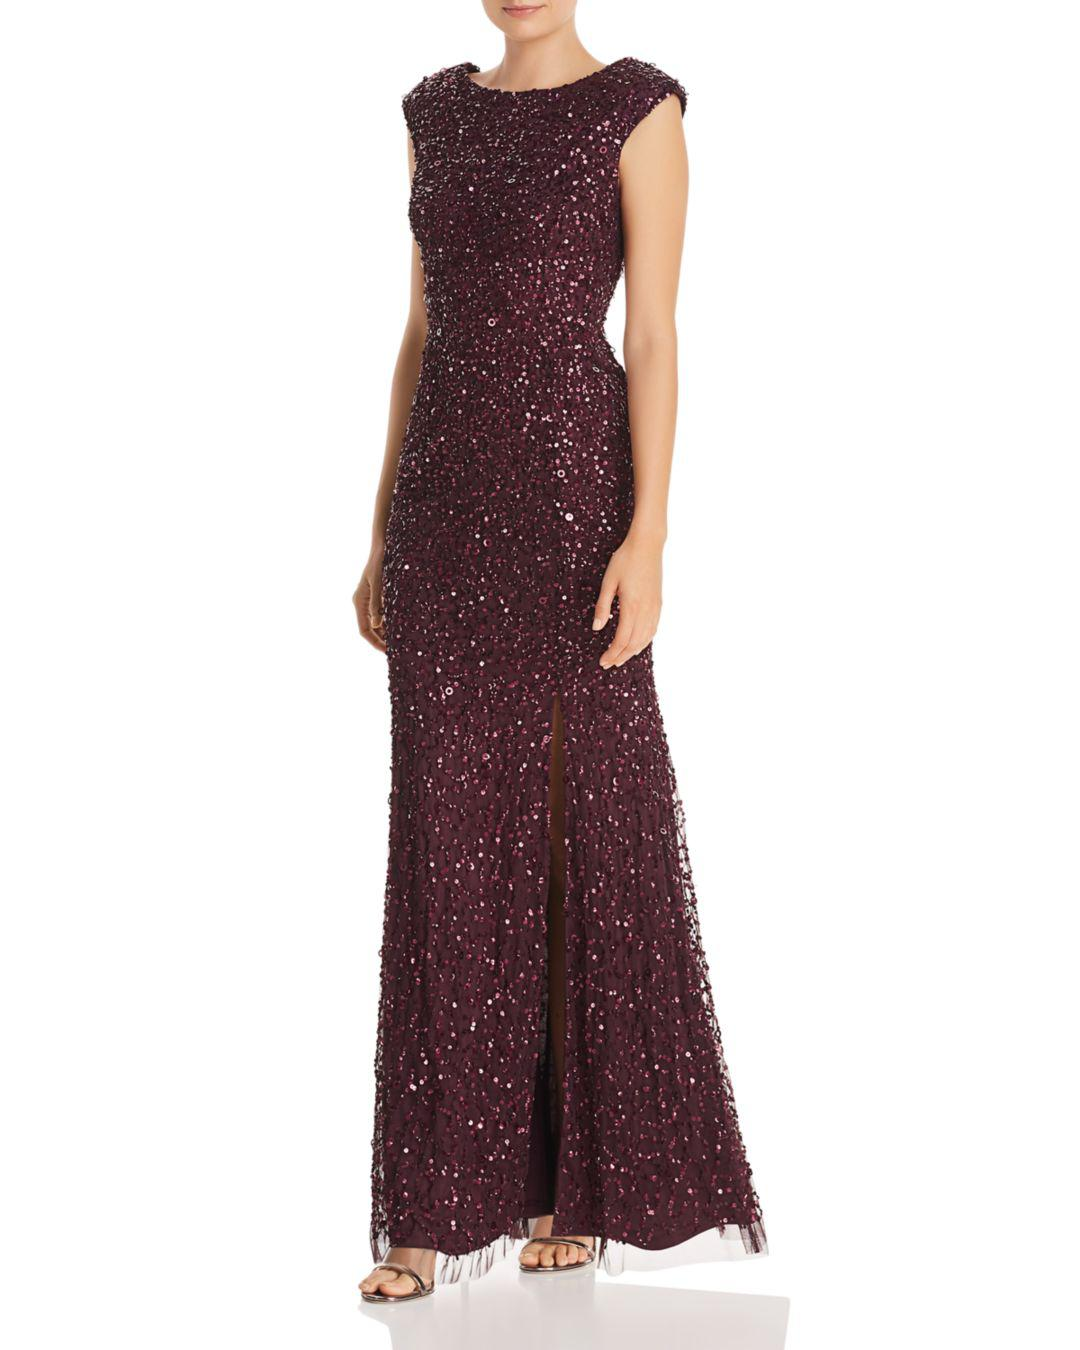 ba19111df4330 Lyst - Adrianna Papell Sequined Cap-sleeve Gown in Purple